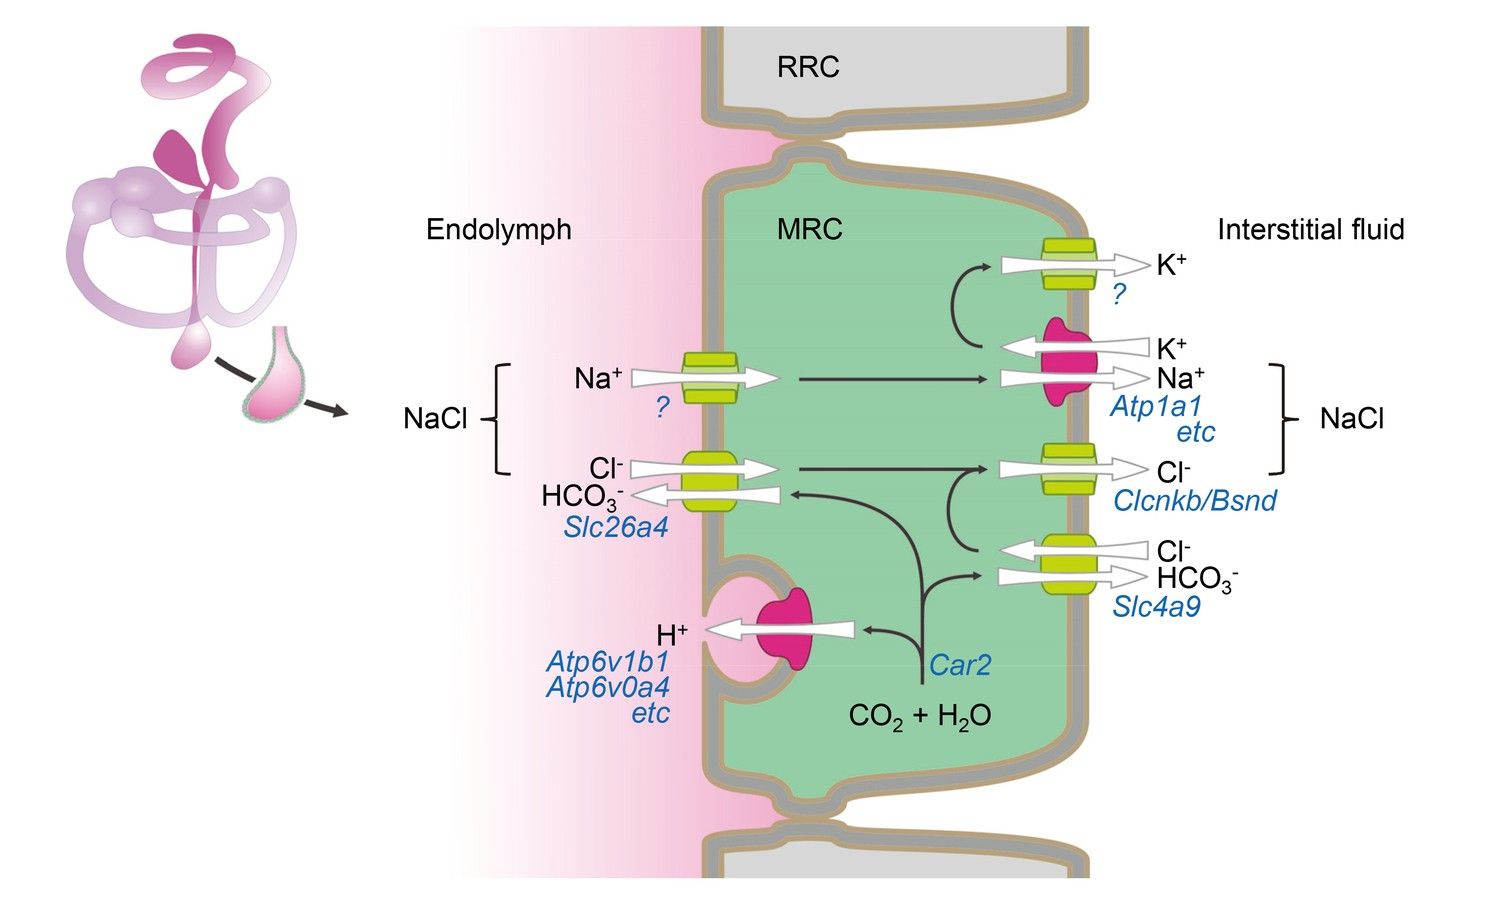 hight resolution of hypothetical model of nacl absorption by mitochondria rich cells of the endolymphatic sac